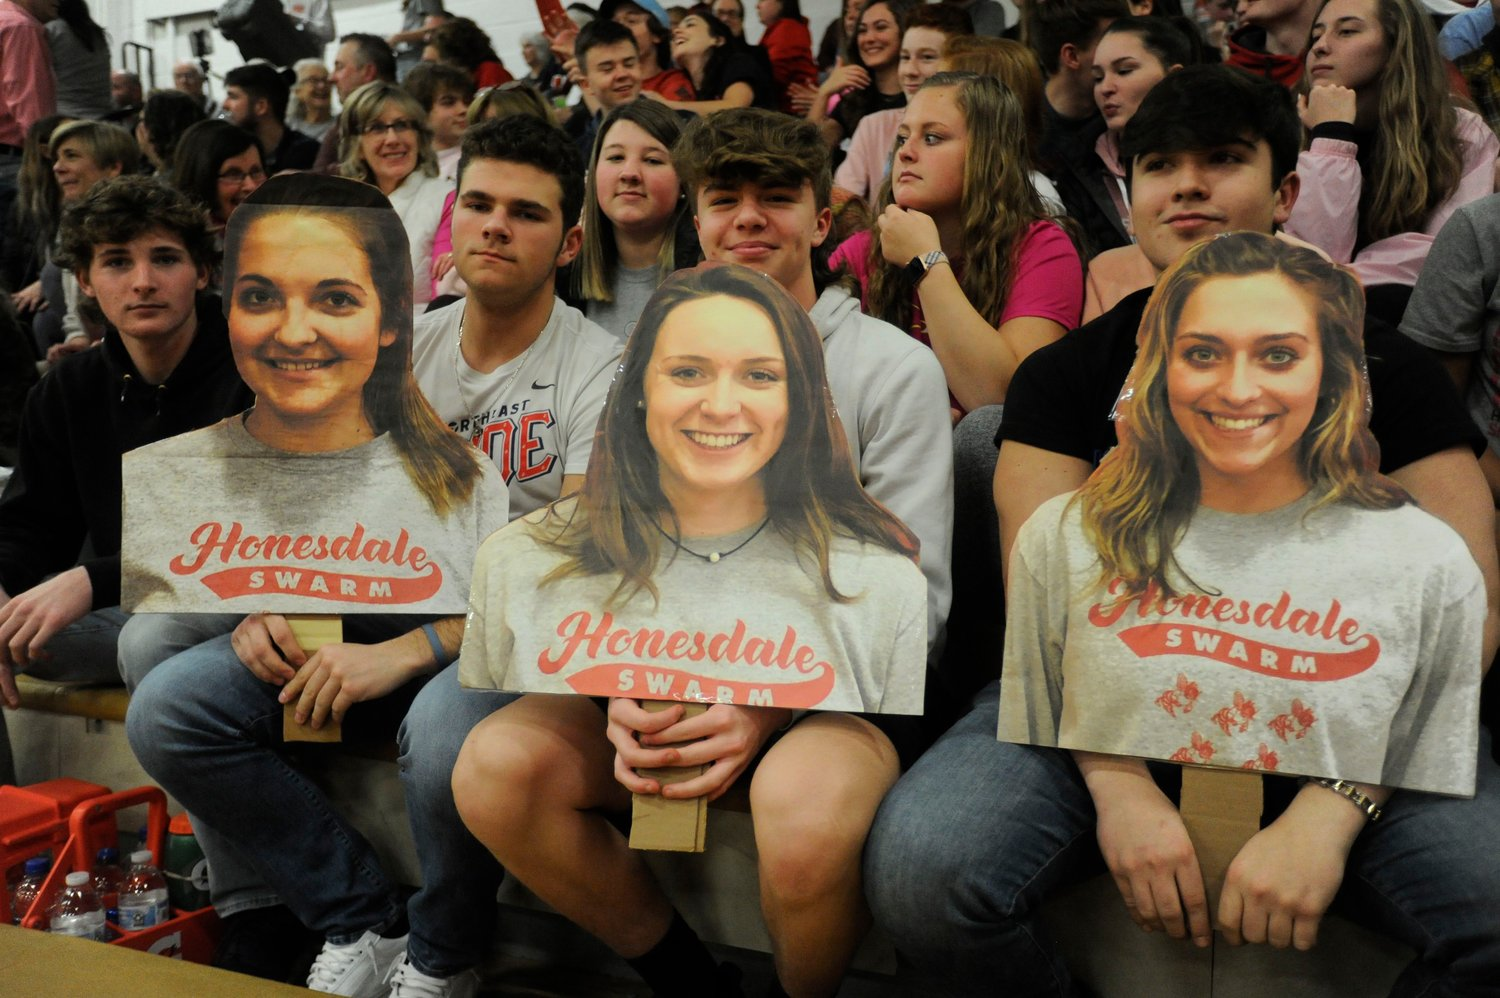 The home-team fans turned out in a 'swarm' on senior night to honor the Lady Hornets.